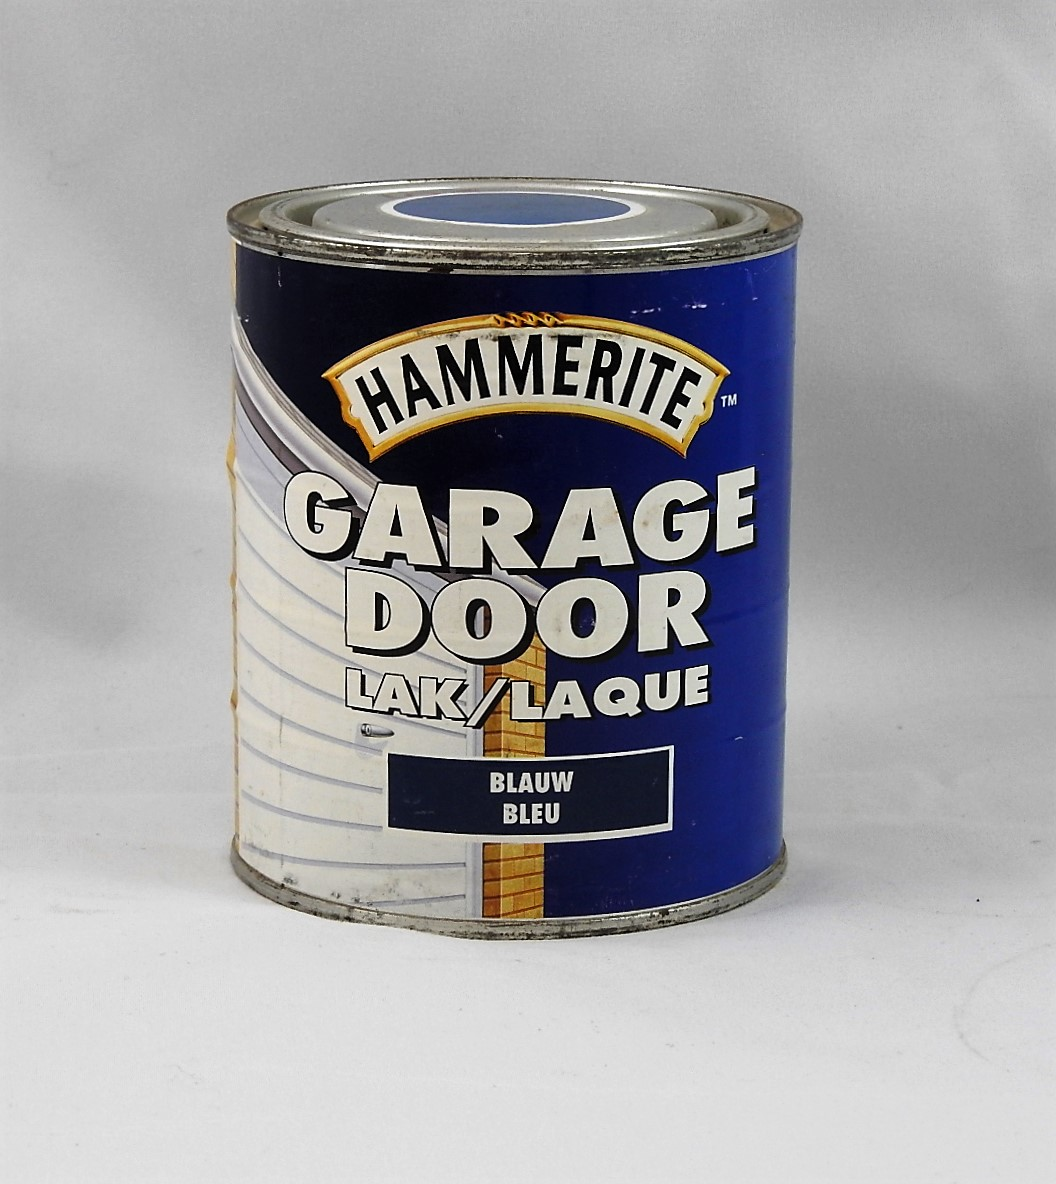 peinture laque pour porte de garage hammerite 750 ml hammerite g 39 peint destockage de peinture. Black Bedroom Furniture Sets. Home Design Ideas